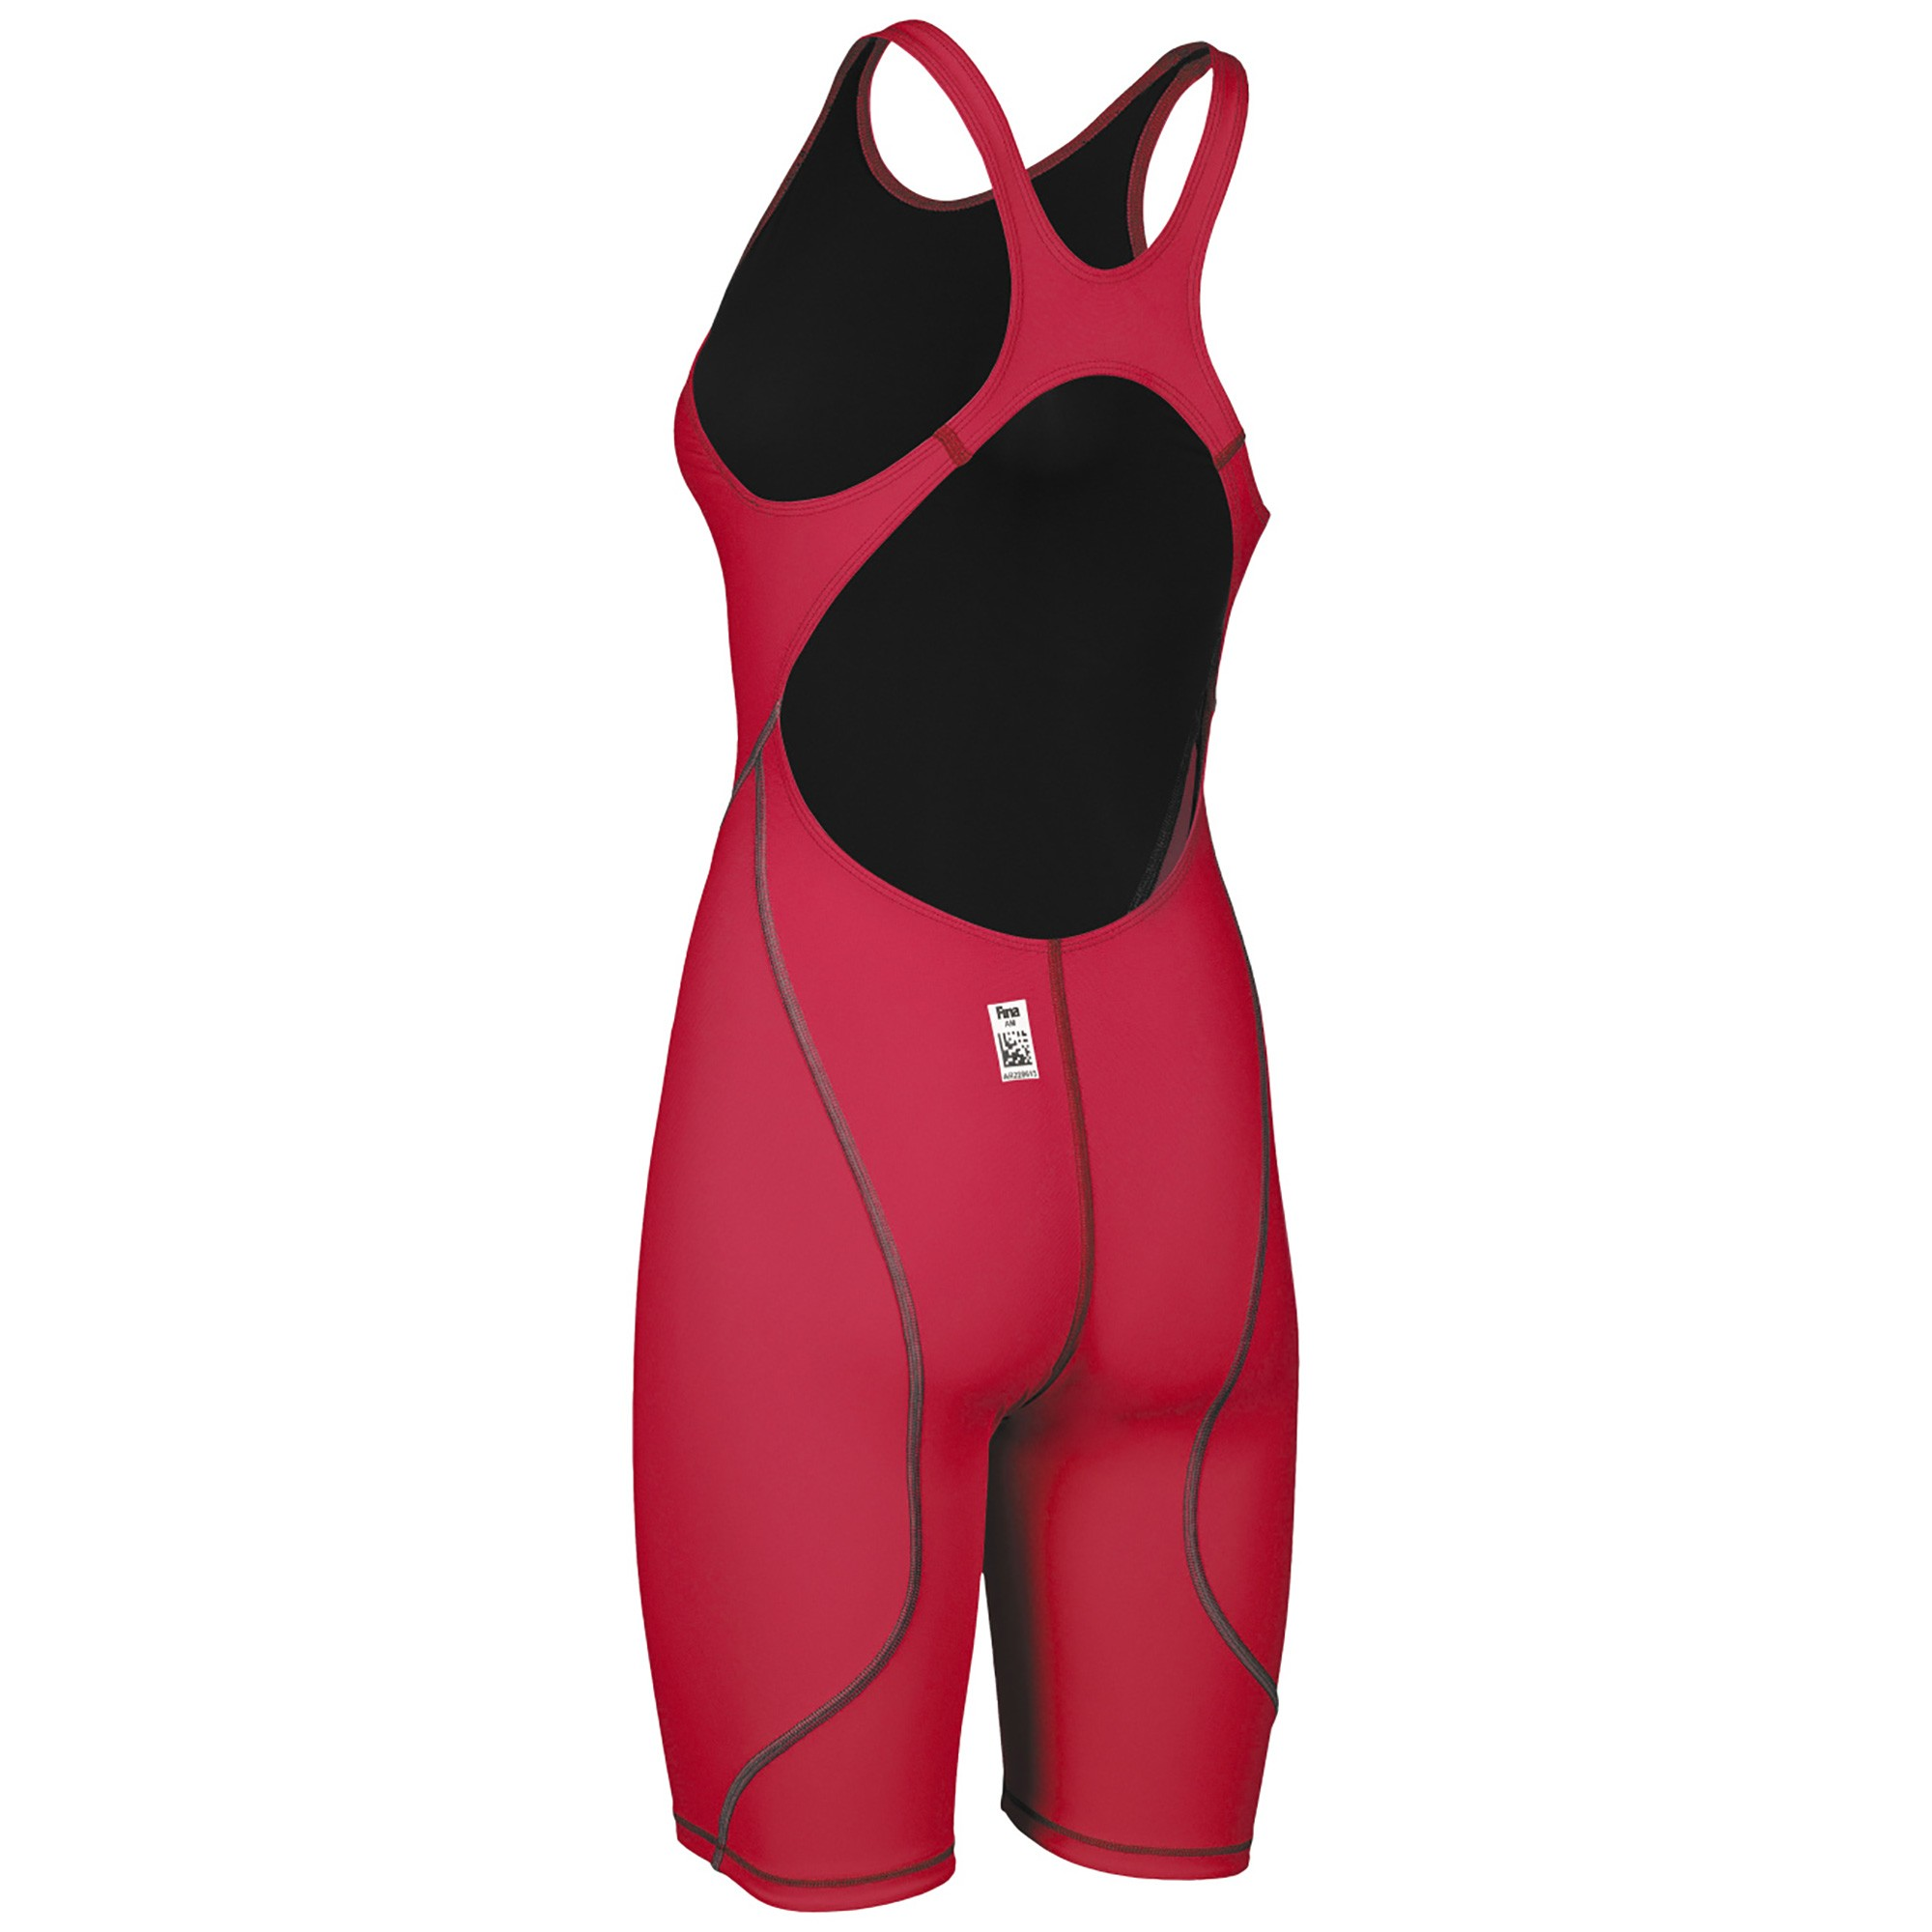 TRAJE POWERSKIN ST 2 0 OPEN BACK